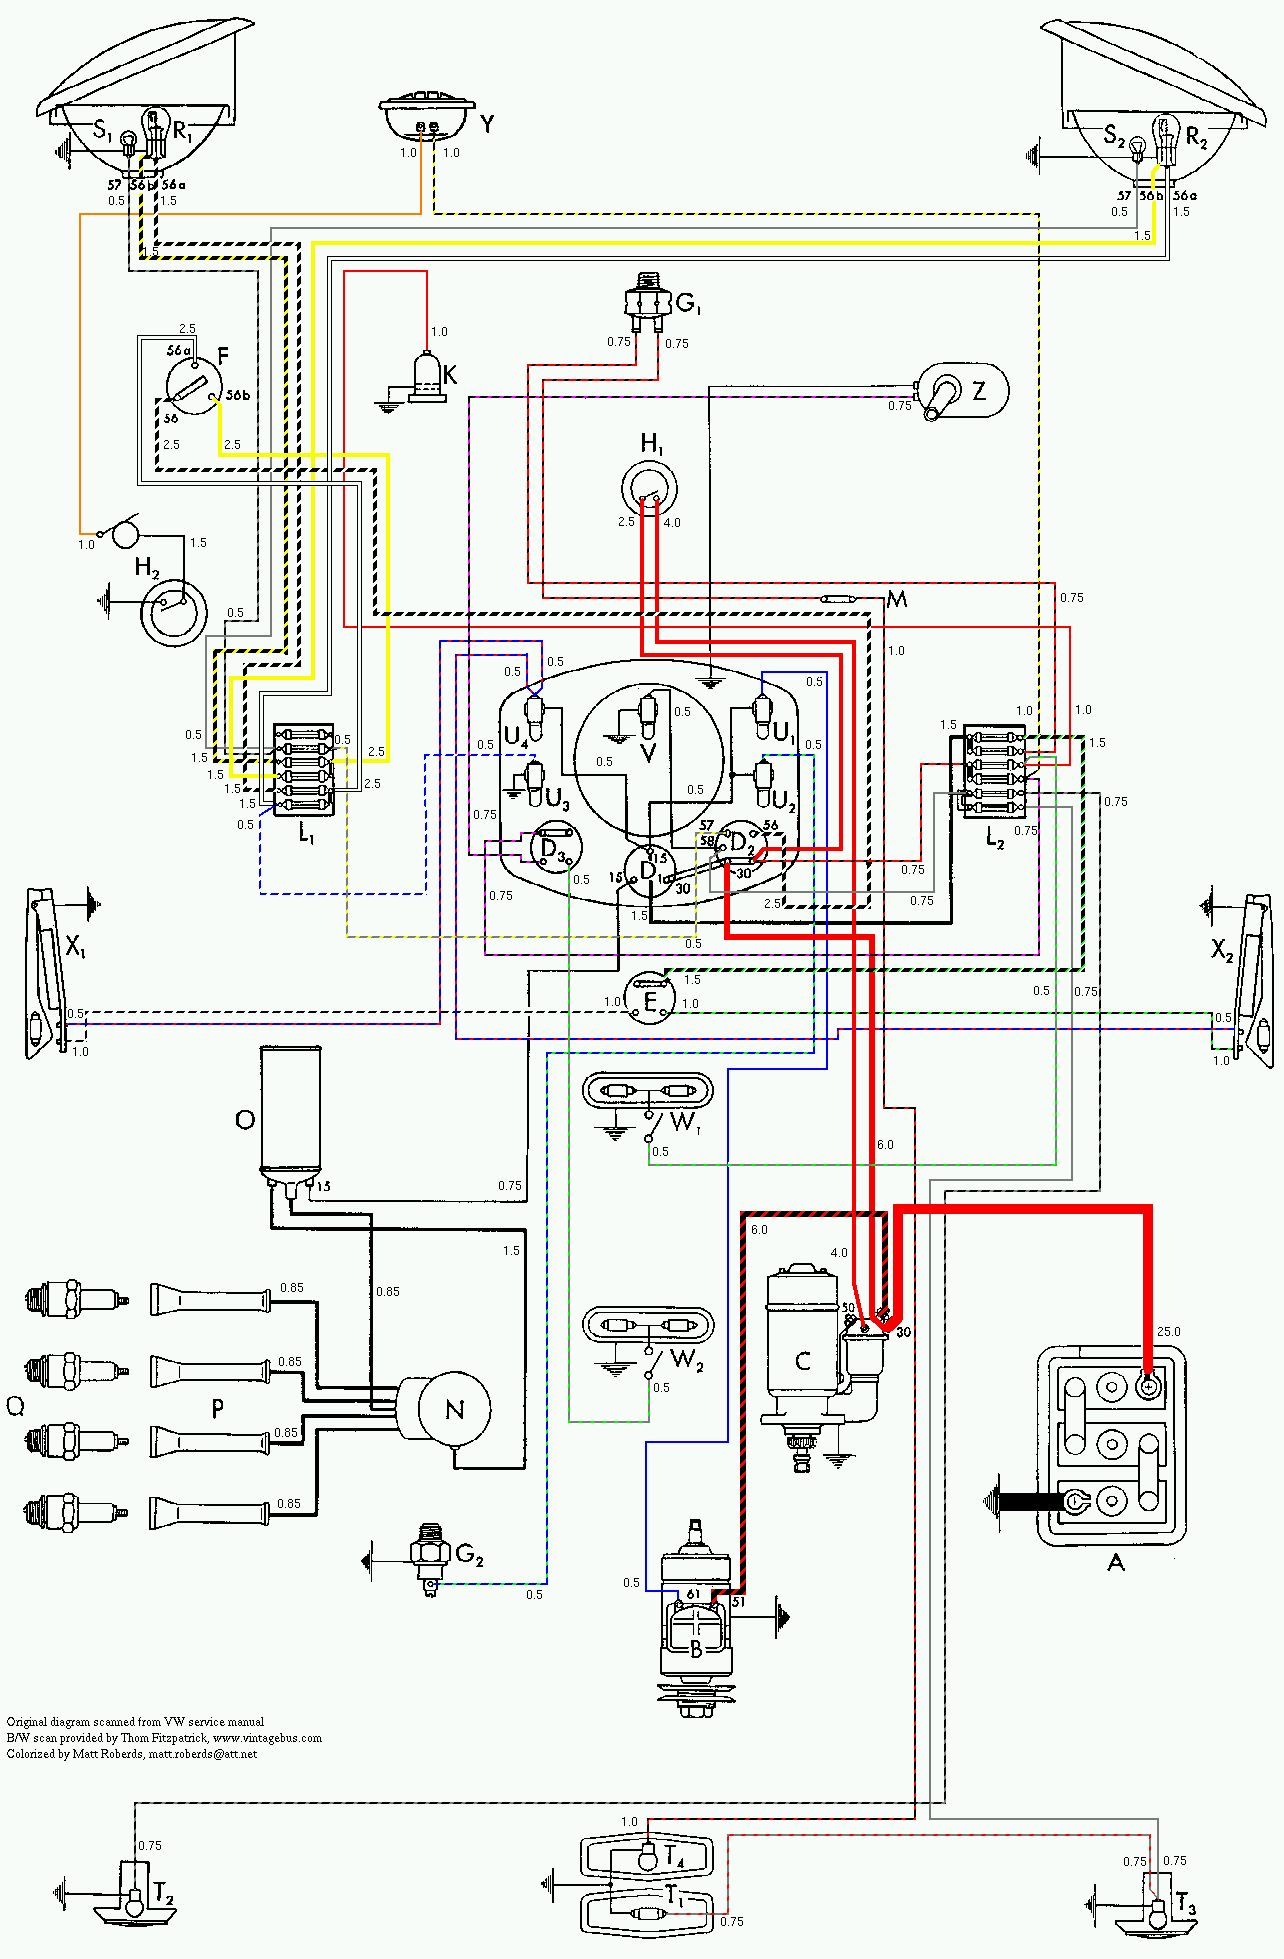 Mercedes Benz Wiring Harness 1295406632 Diagram Sample Automotive Electrical Harnesses Fuse Box Wall Auto